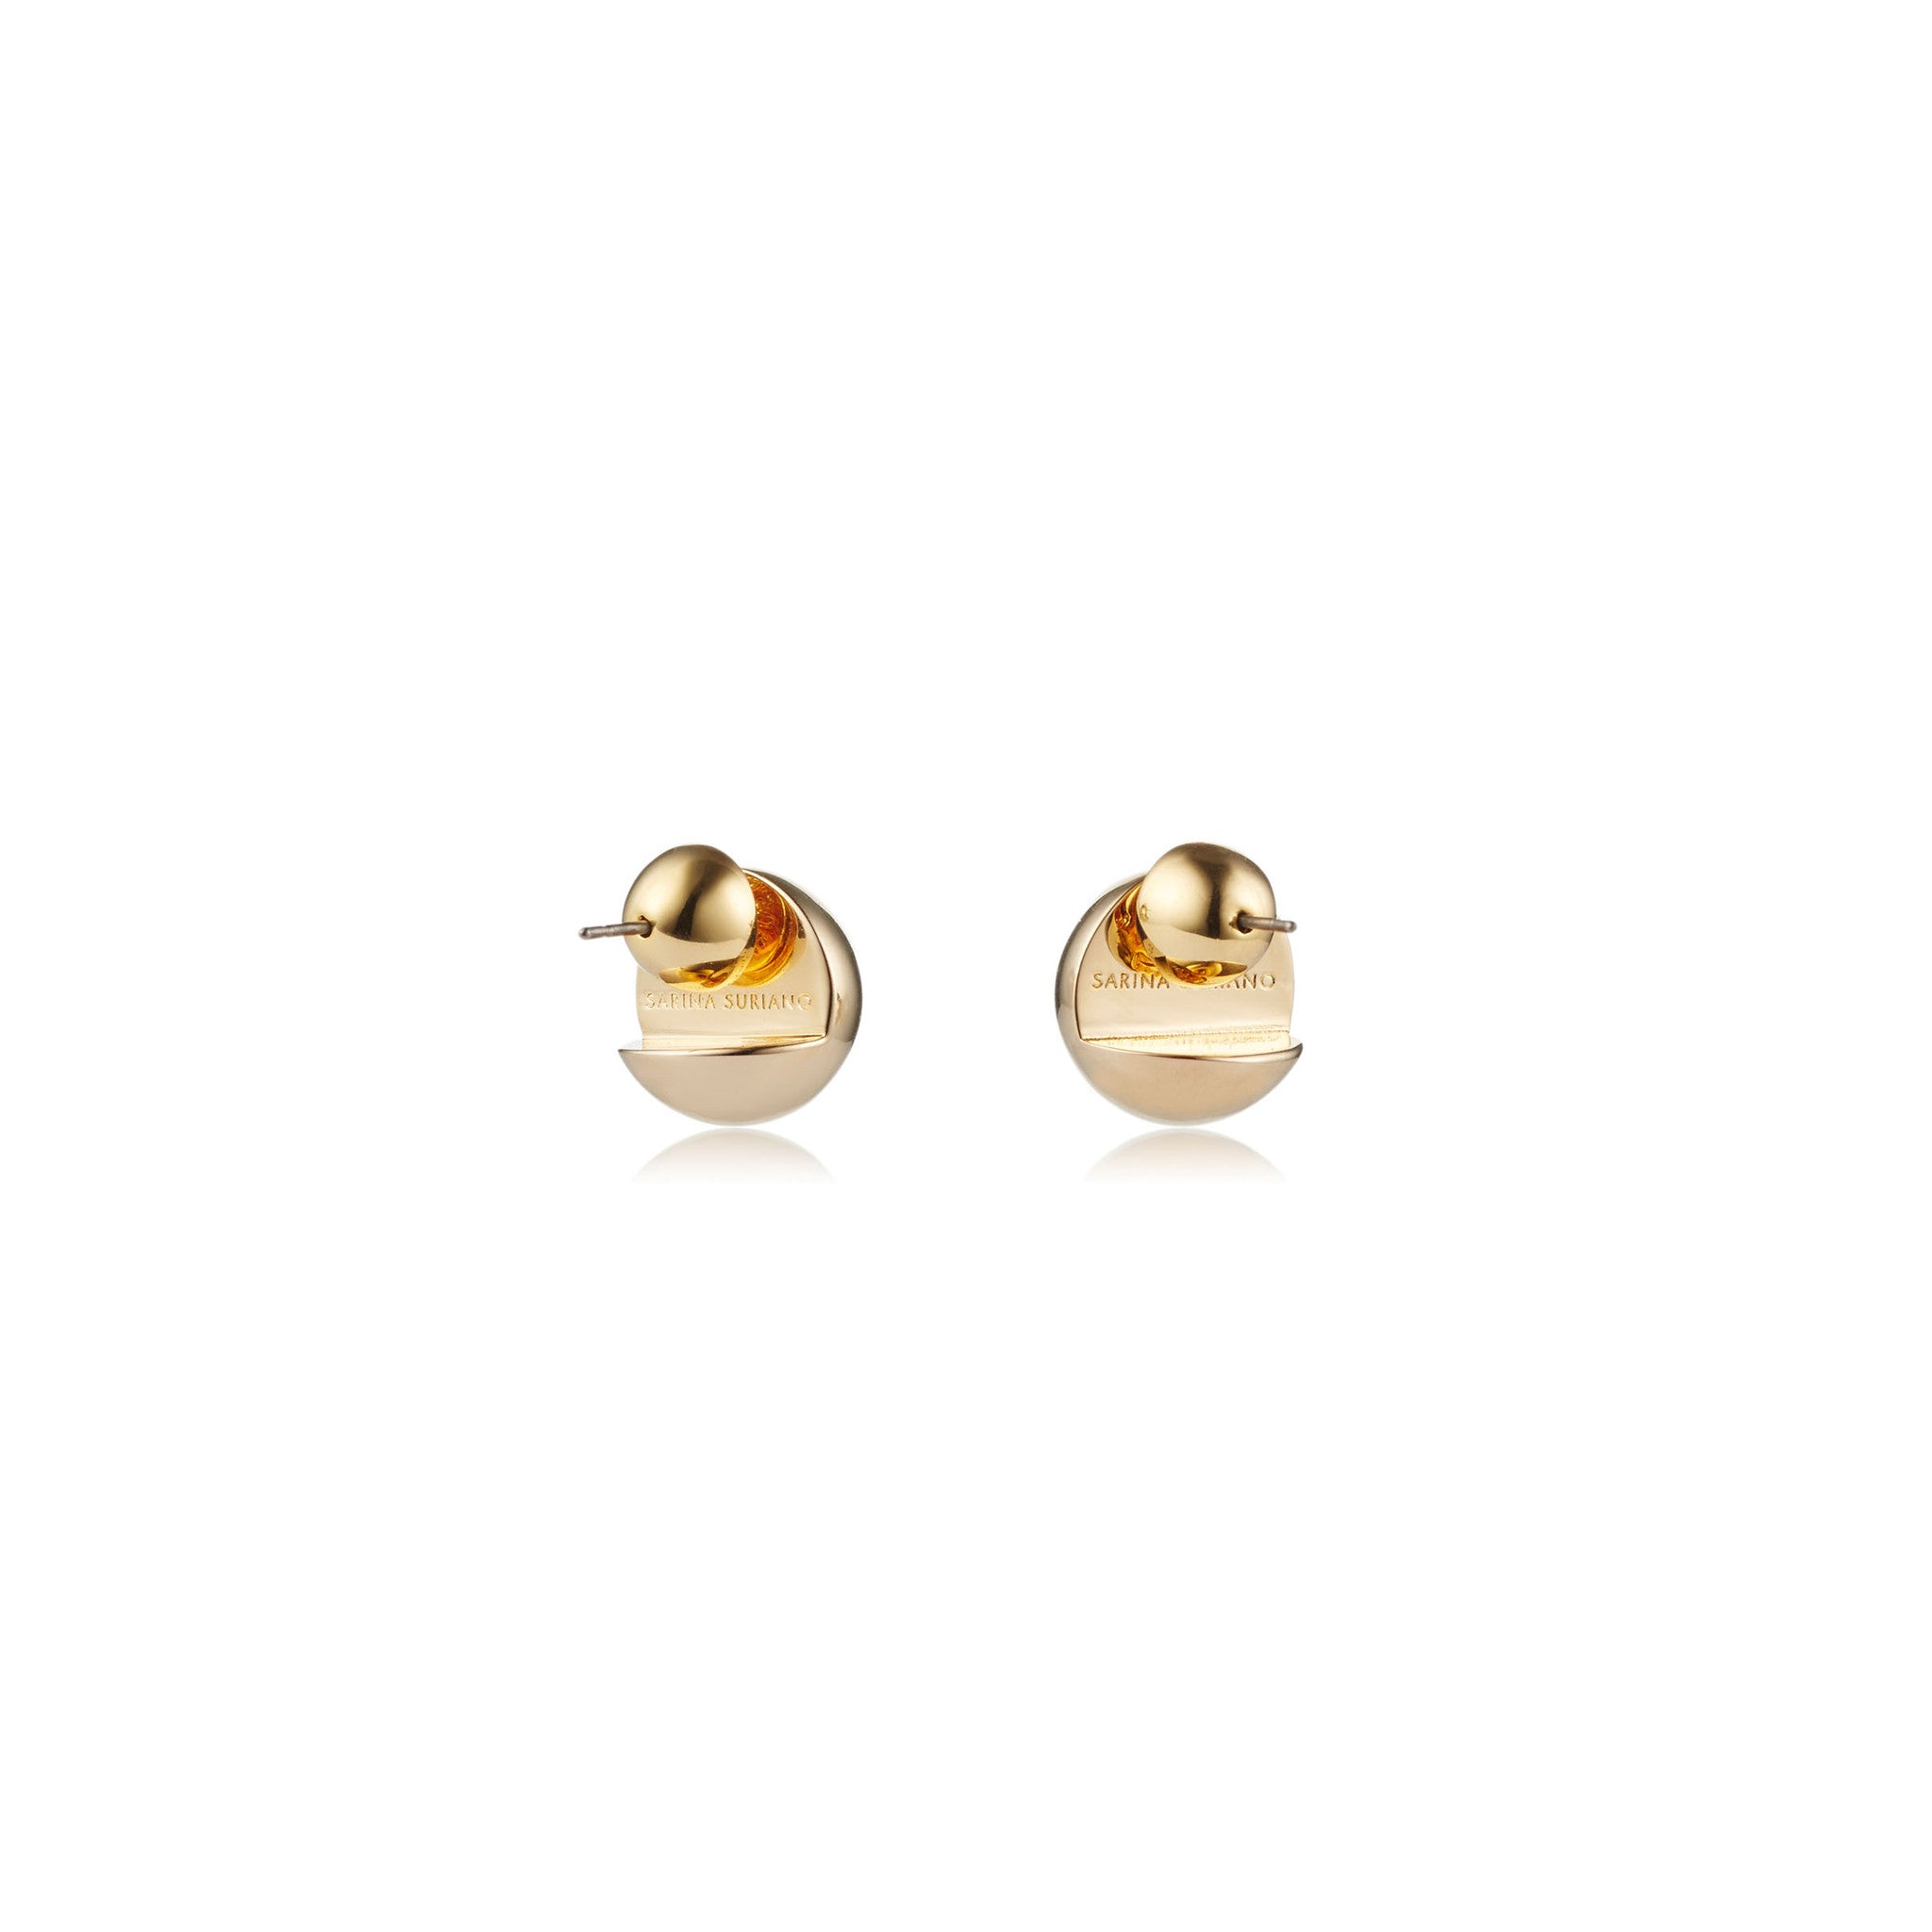 Solid brass, 18K gold plated Cava stud earrings – back